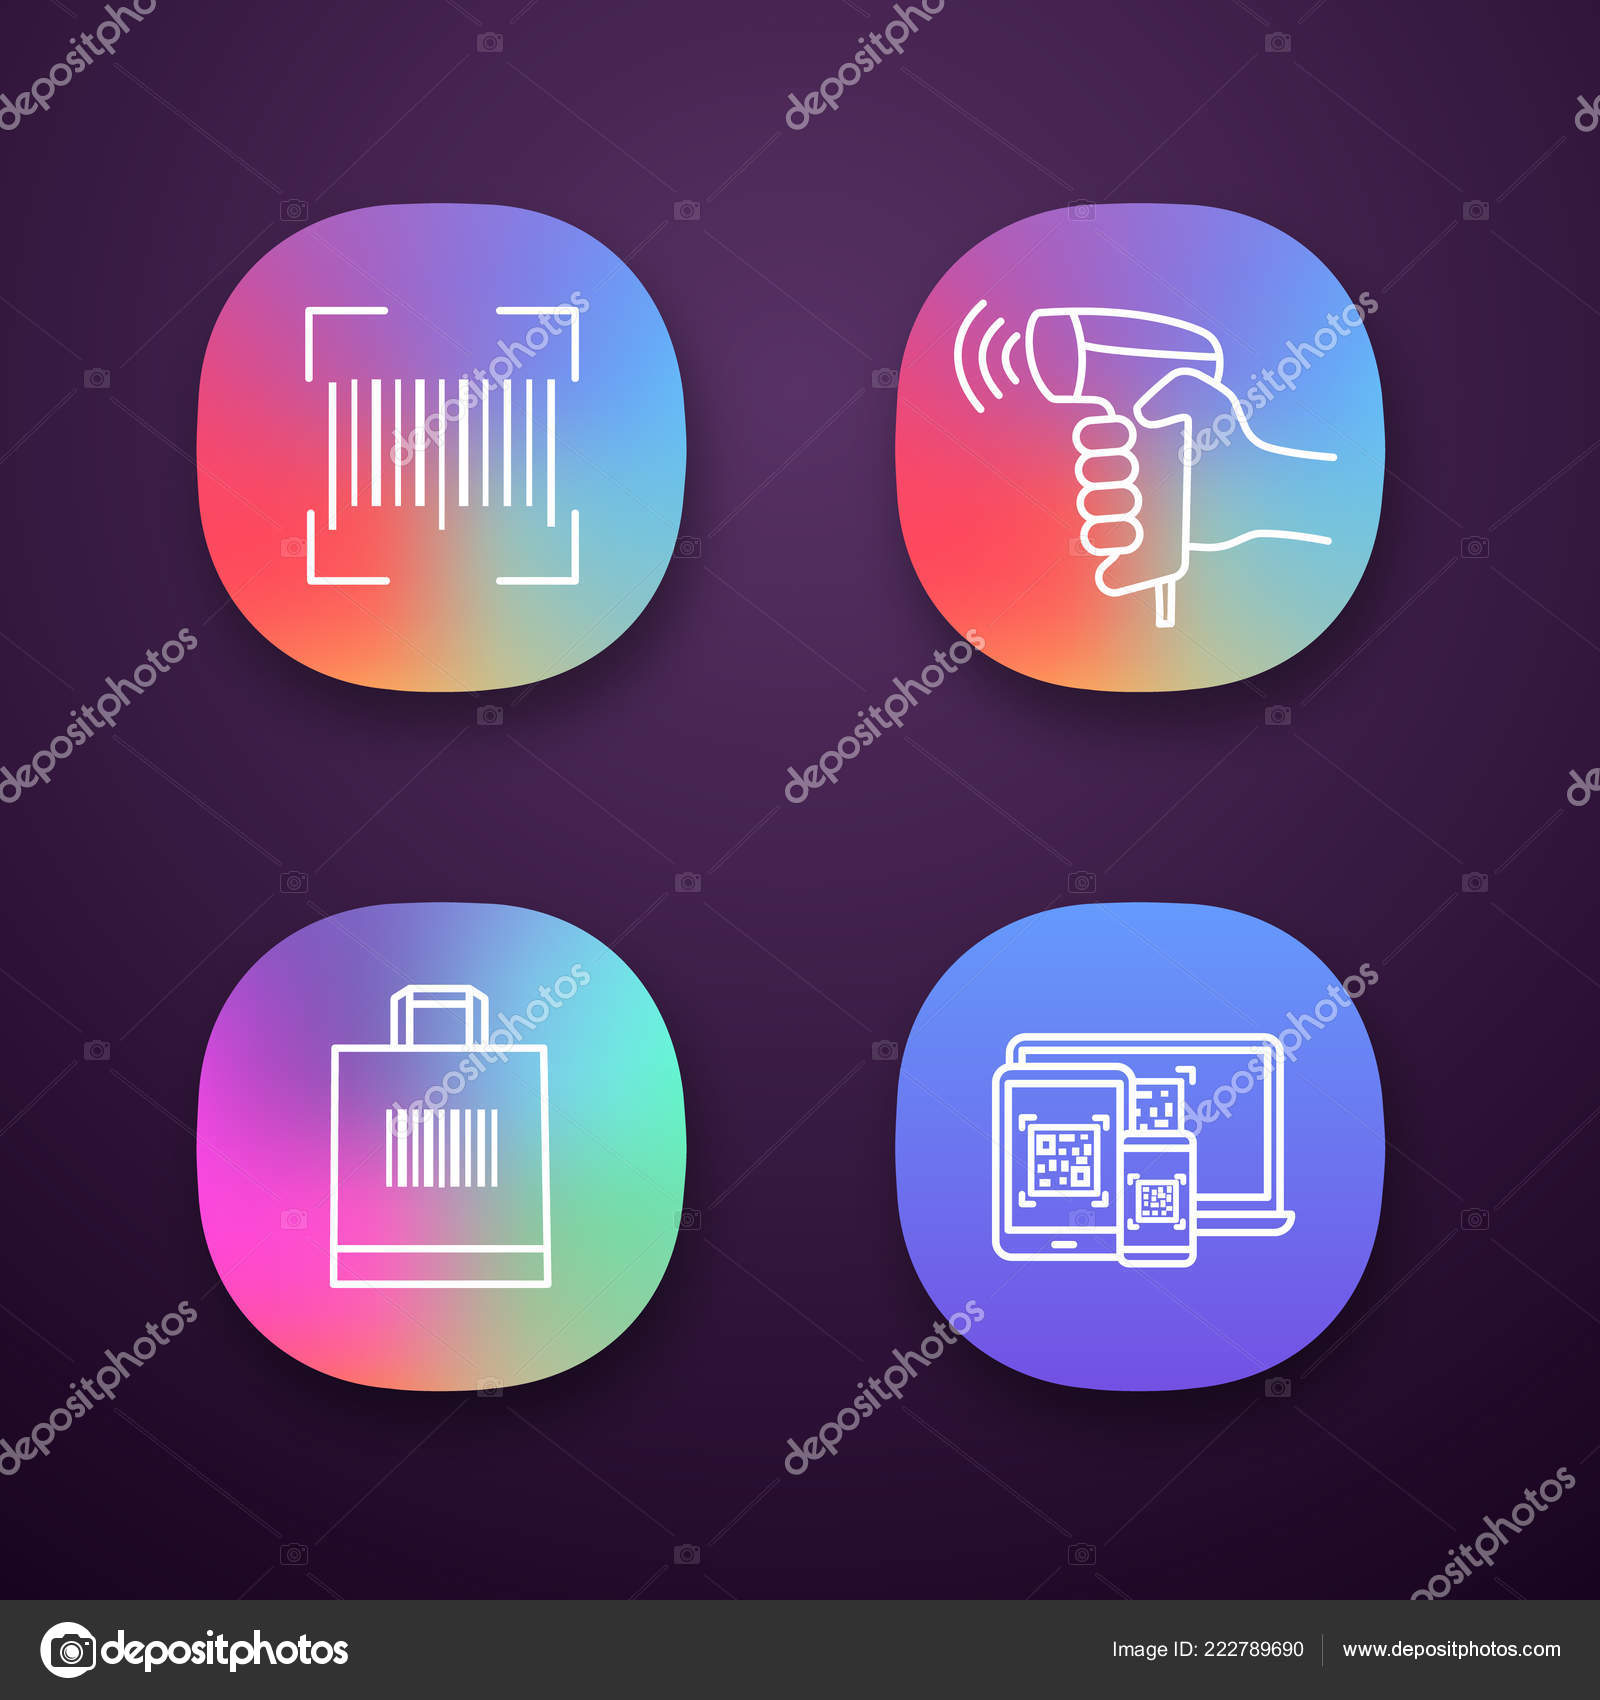 Barcodes App Icons Set Linear Code Handheld Barcode Scanner